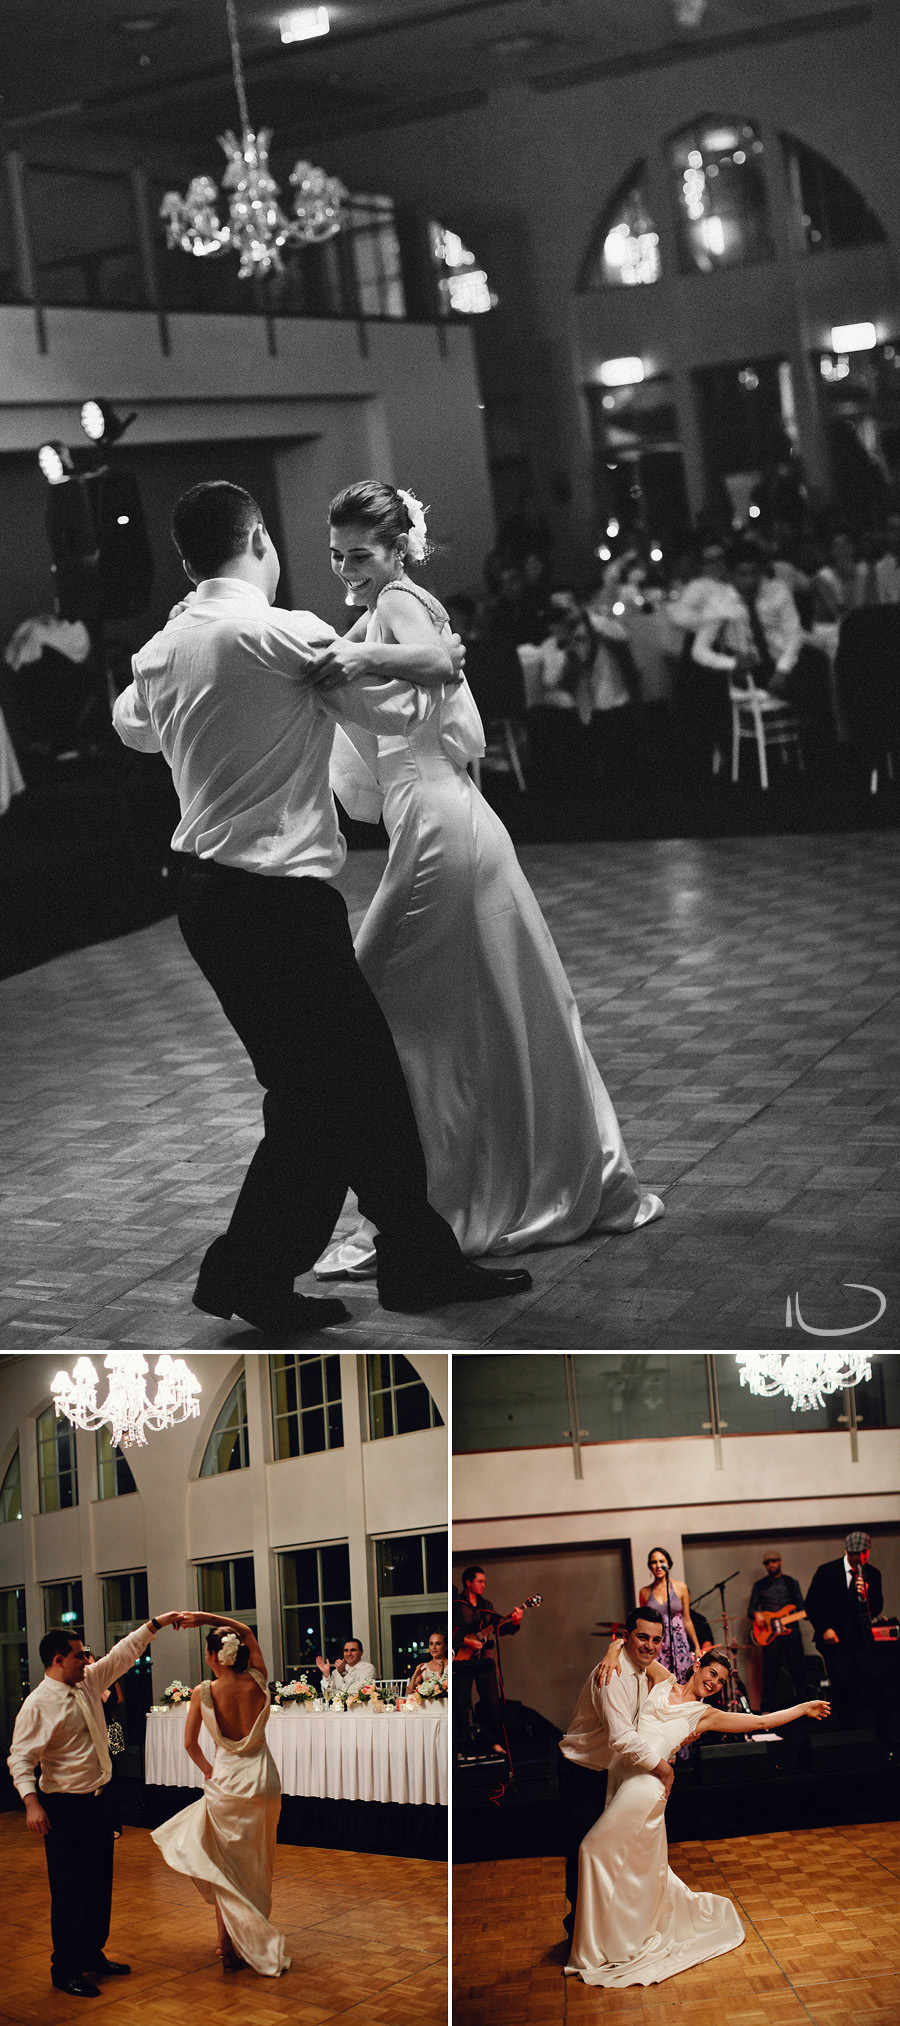 Elegant Wedding Photography: Bridal waltz